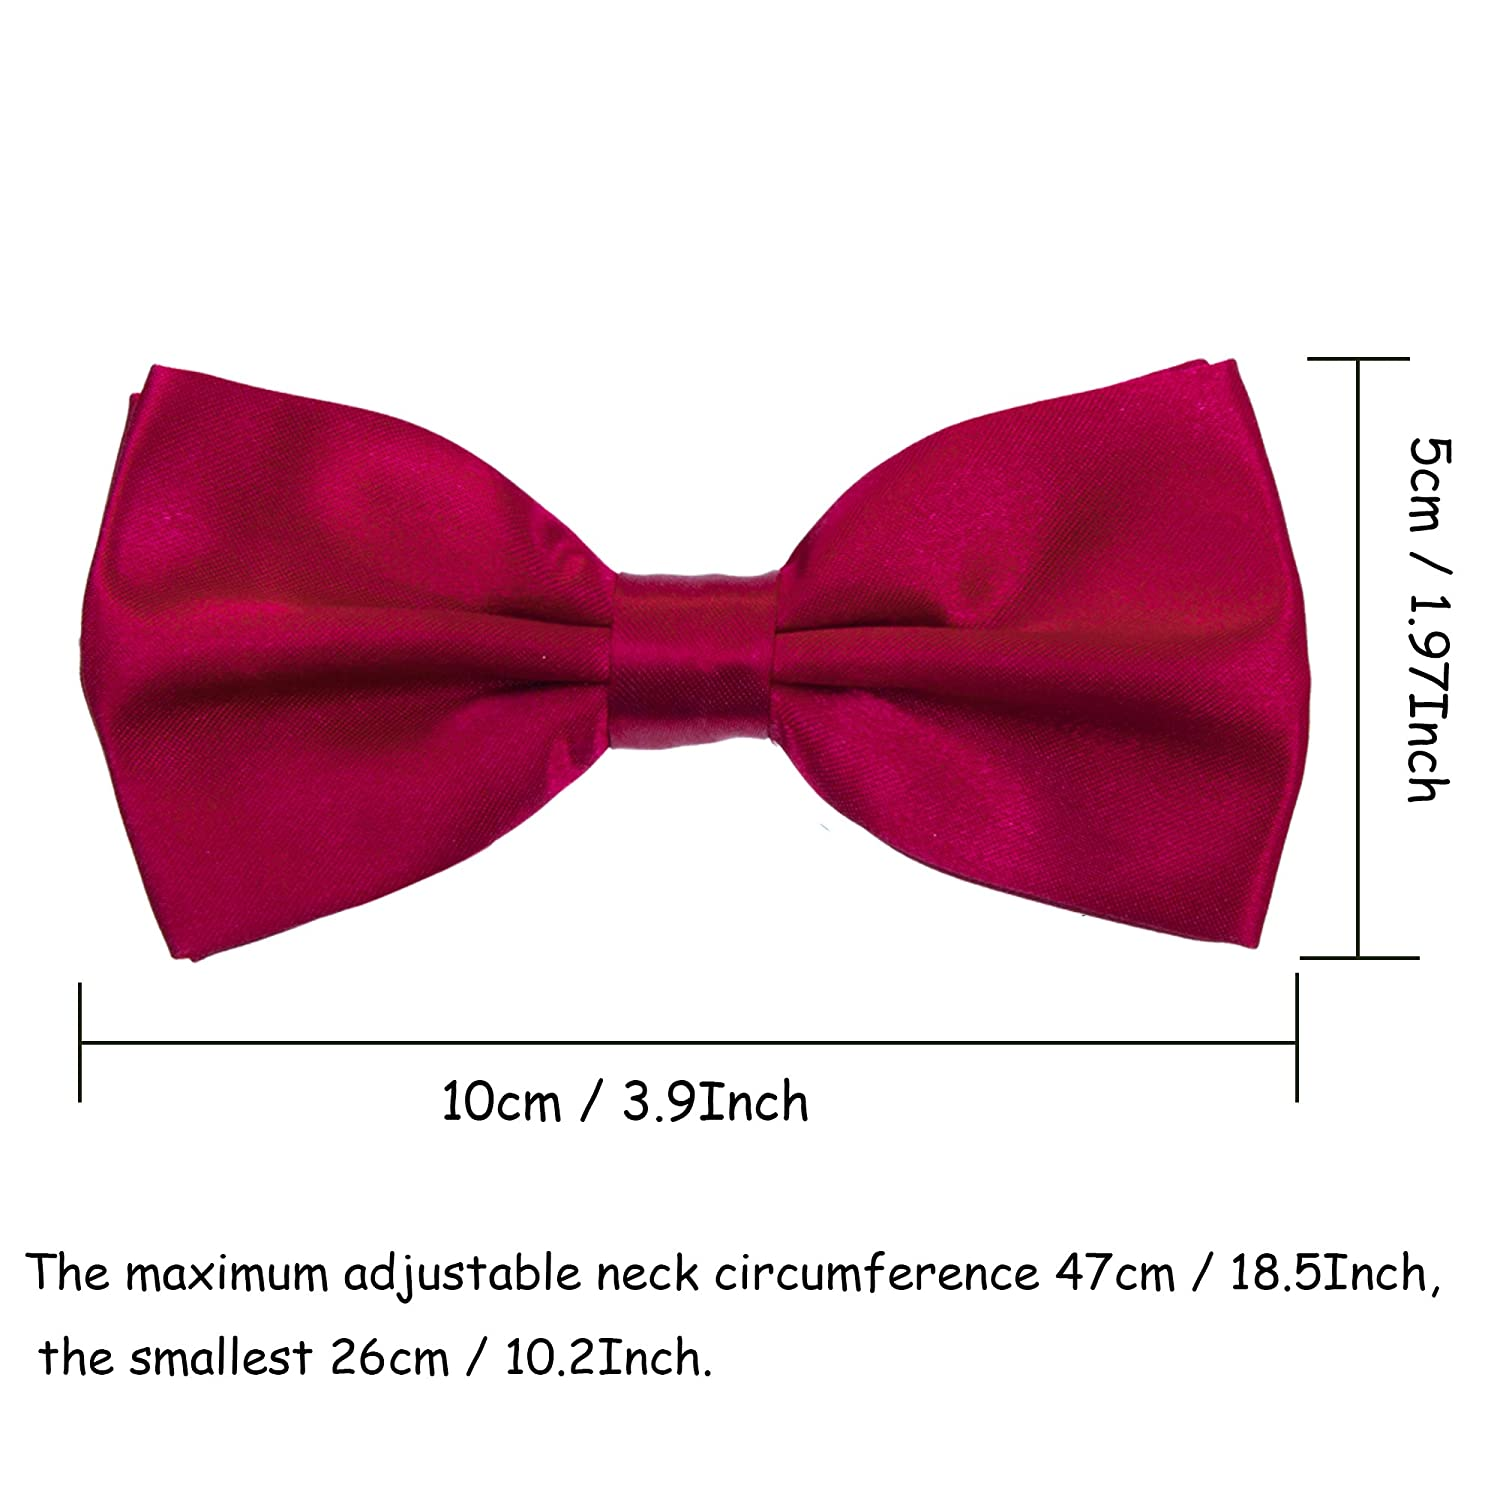 Kids Suspender Bow Tie Sets Navy Blue Adjustable Elastic Classic Accessory Sets for Boys /& Girls